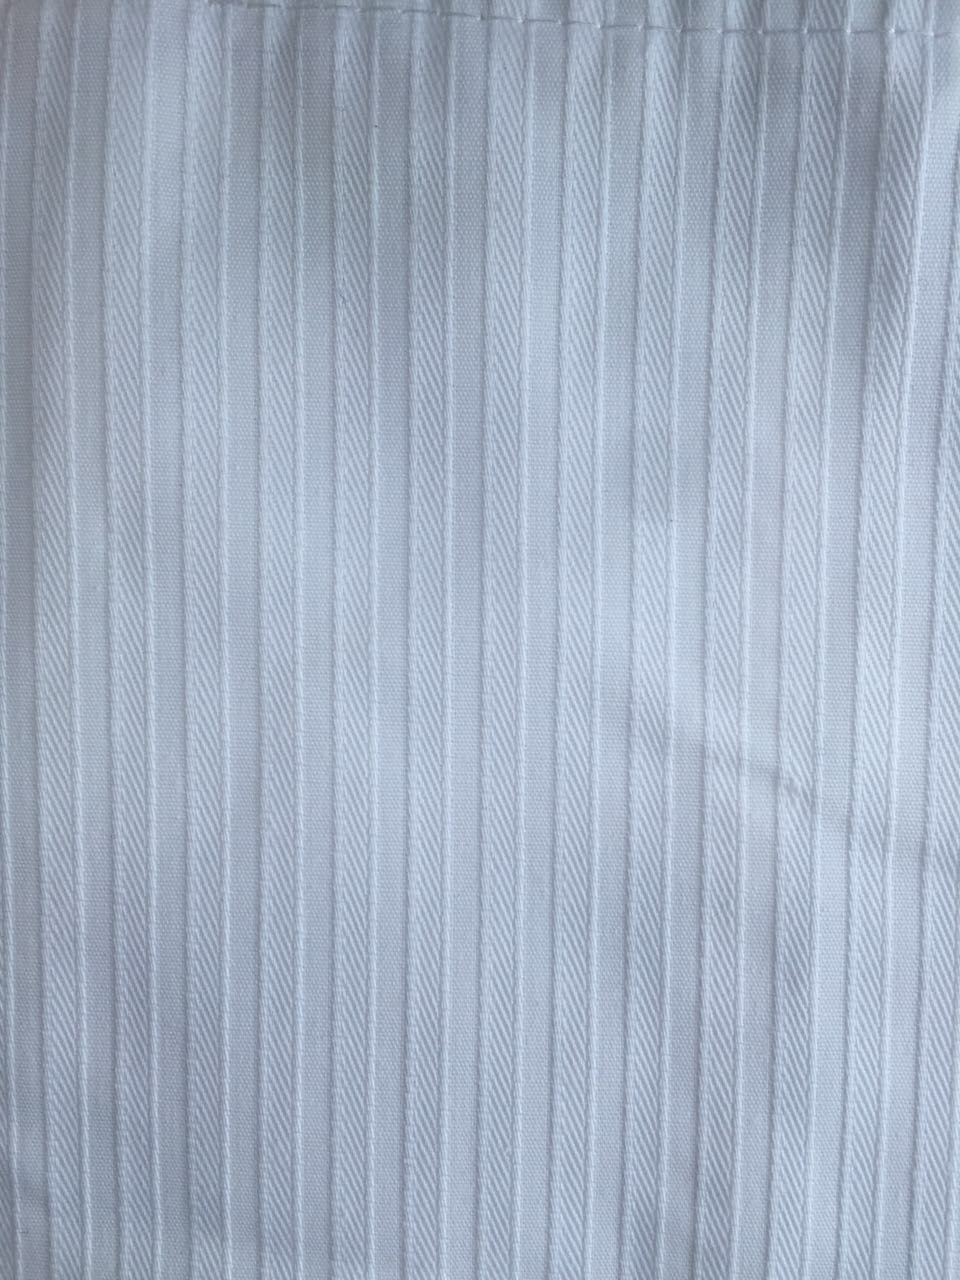 Taekwondo uniform fabric wide stripe